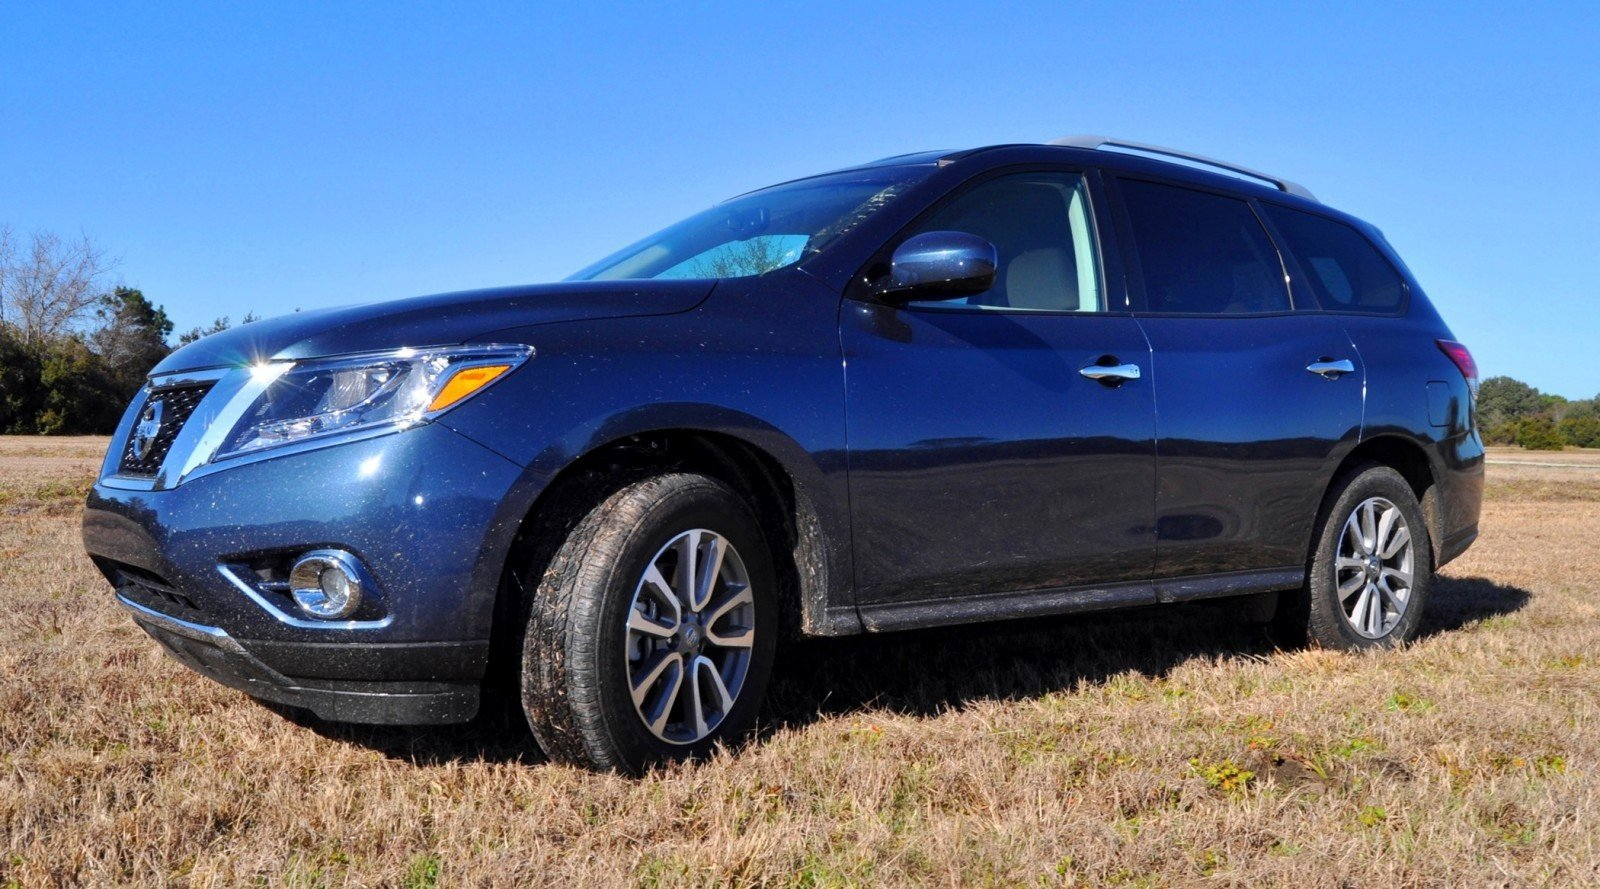 Road Test Review - 2015 Nissan Pathfinder SV 4WD 88